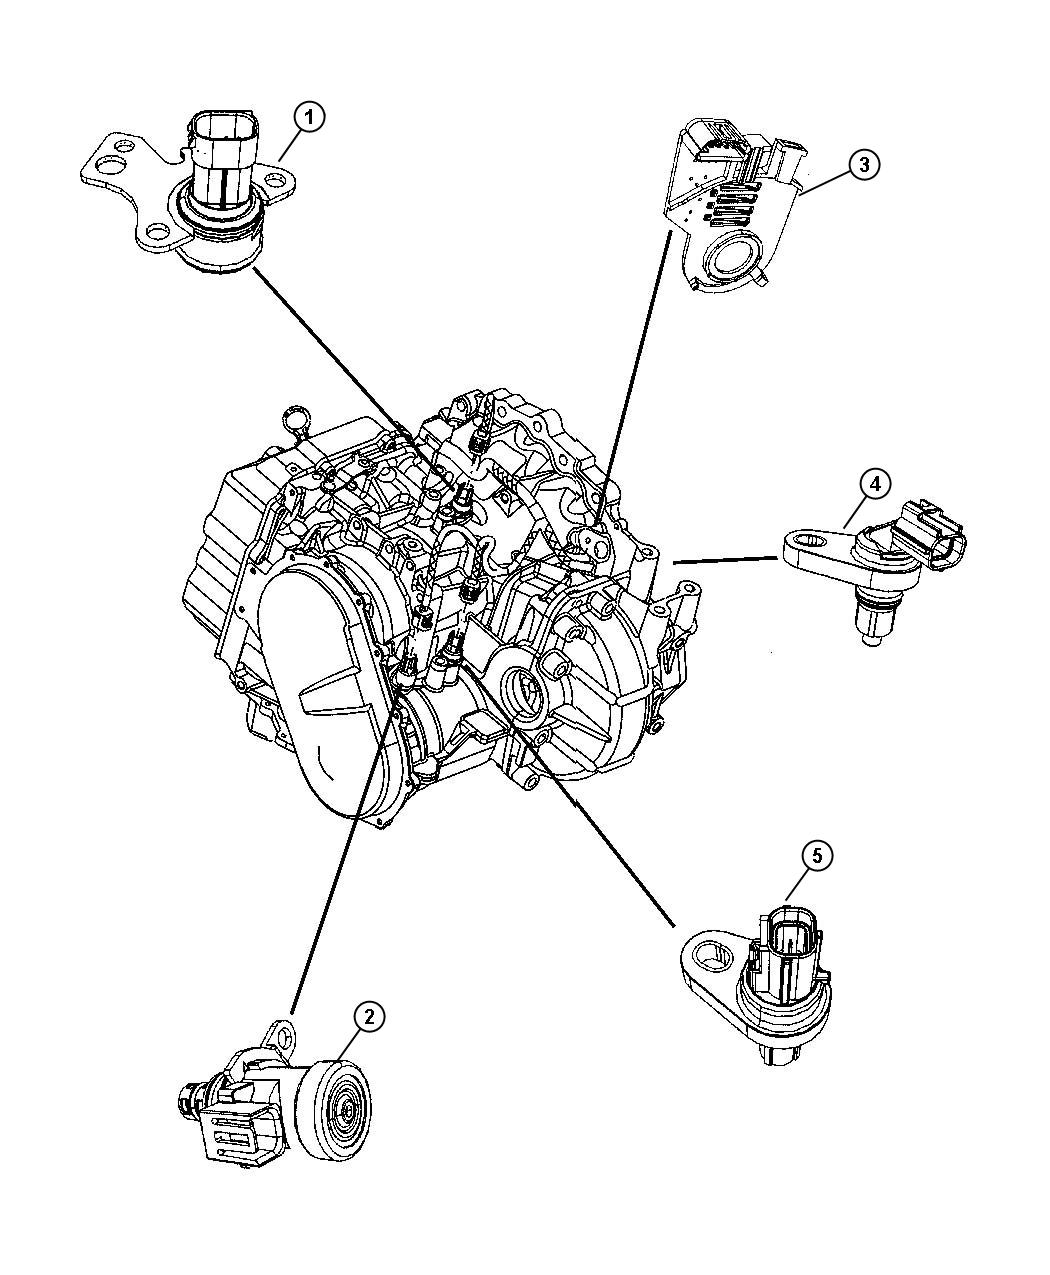 valeo deutz alternator wiring diagram 4 wire alternator